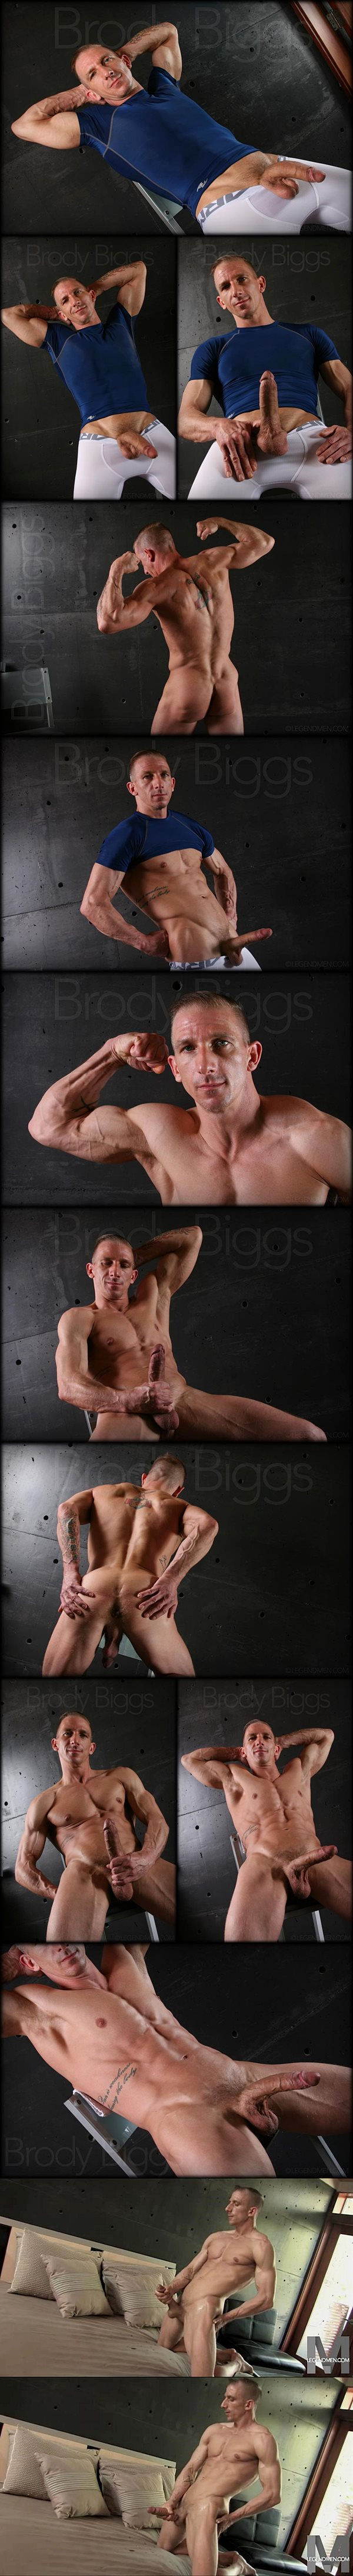 Masculine webcam model Brody Biggs jerks off at Legendmen